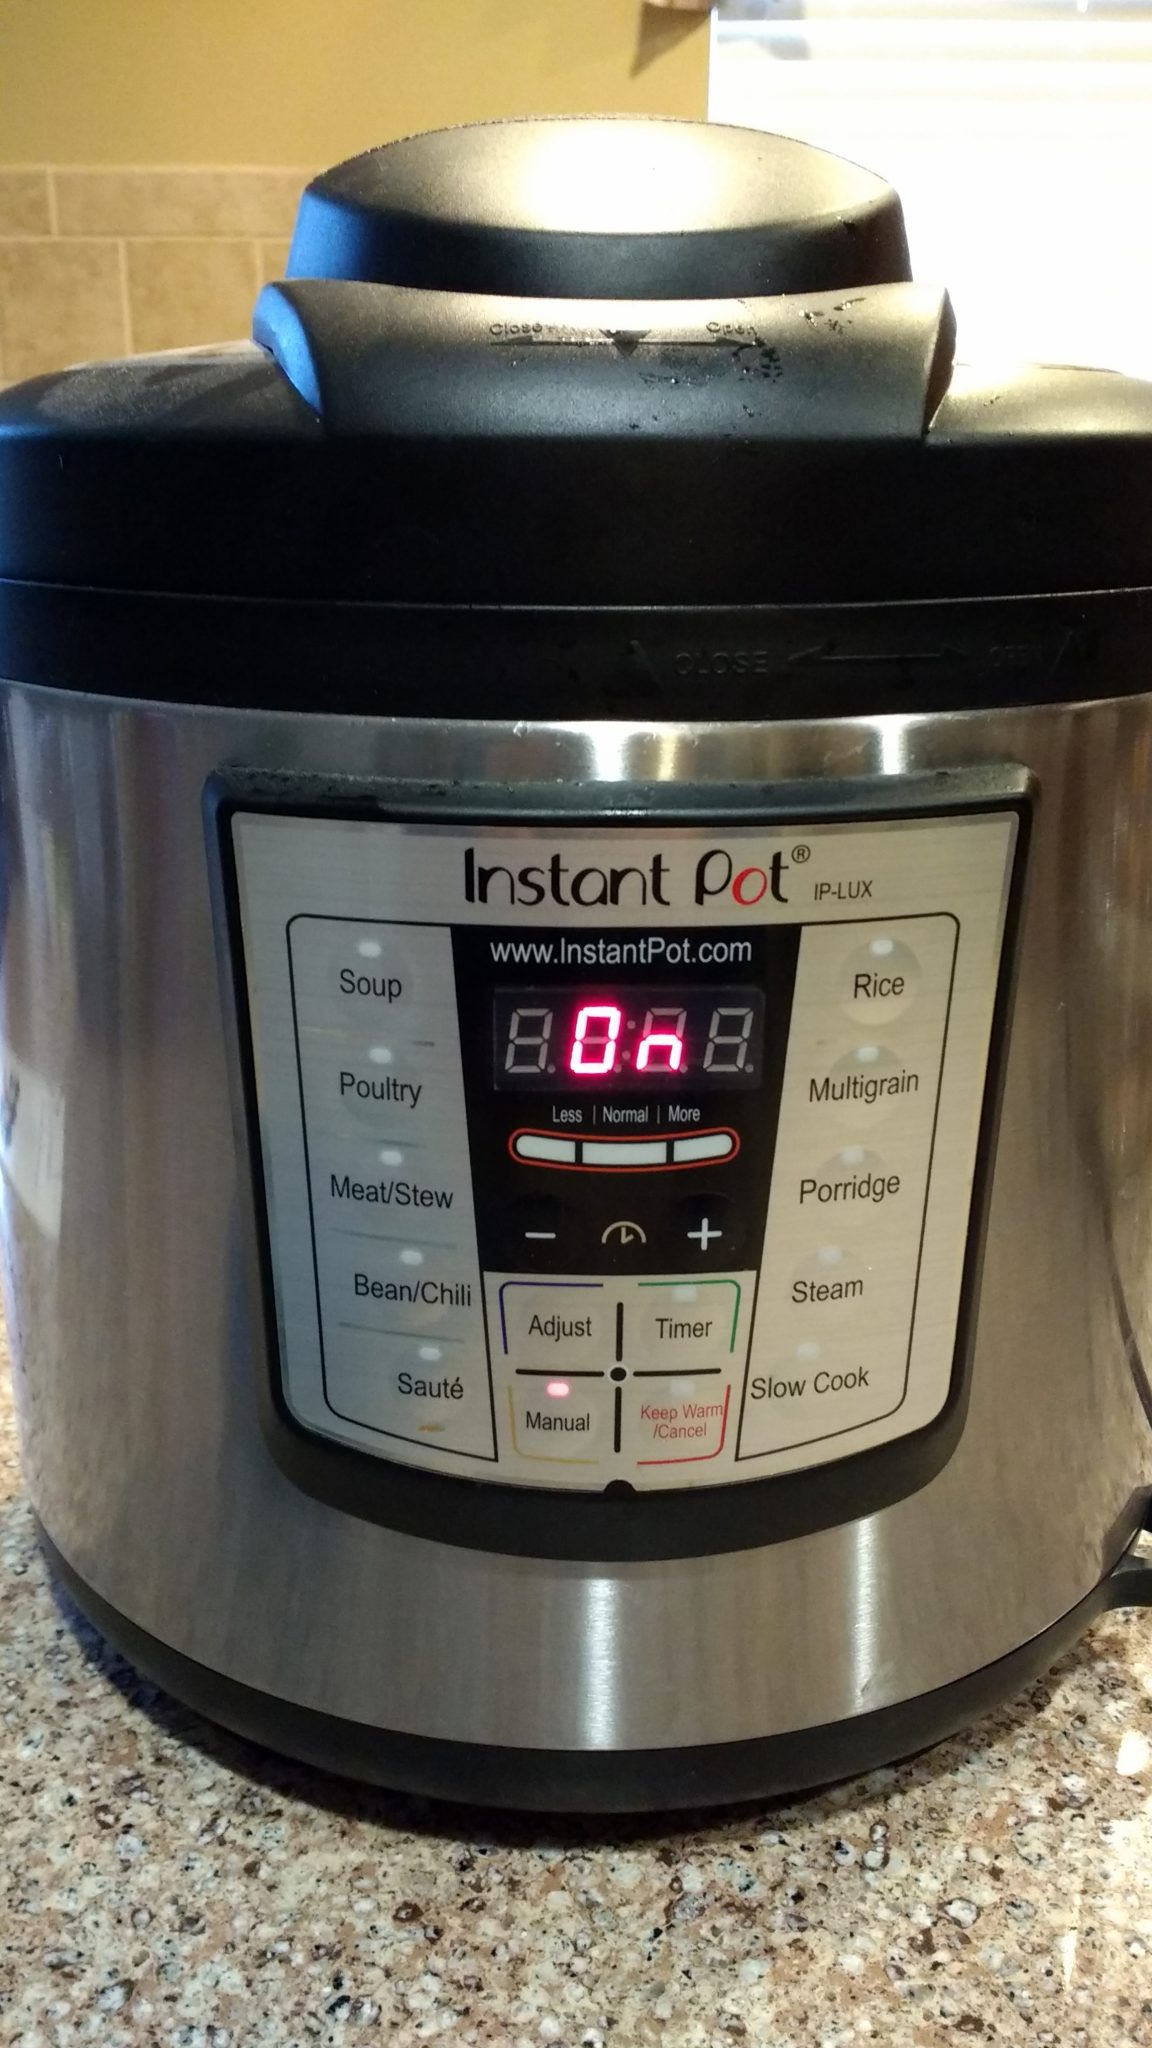 Instant Pot: Cooking Fad or Kitchen Staple? | Mommy Runs It